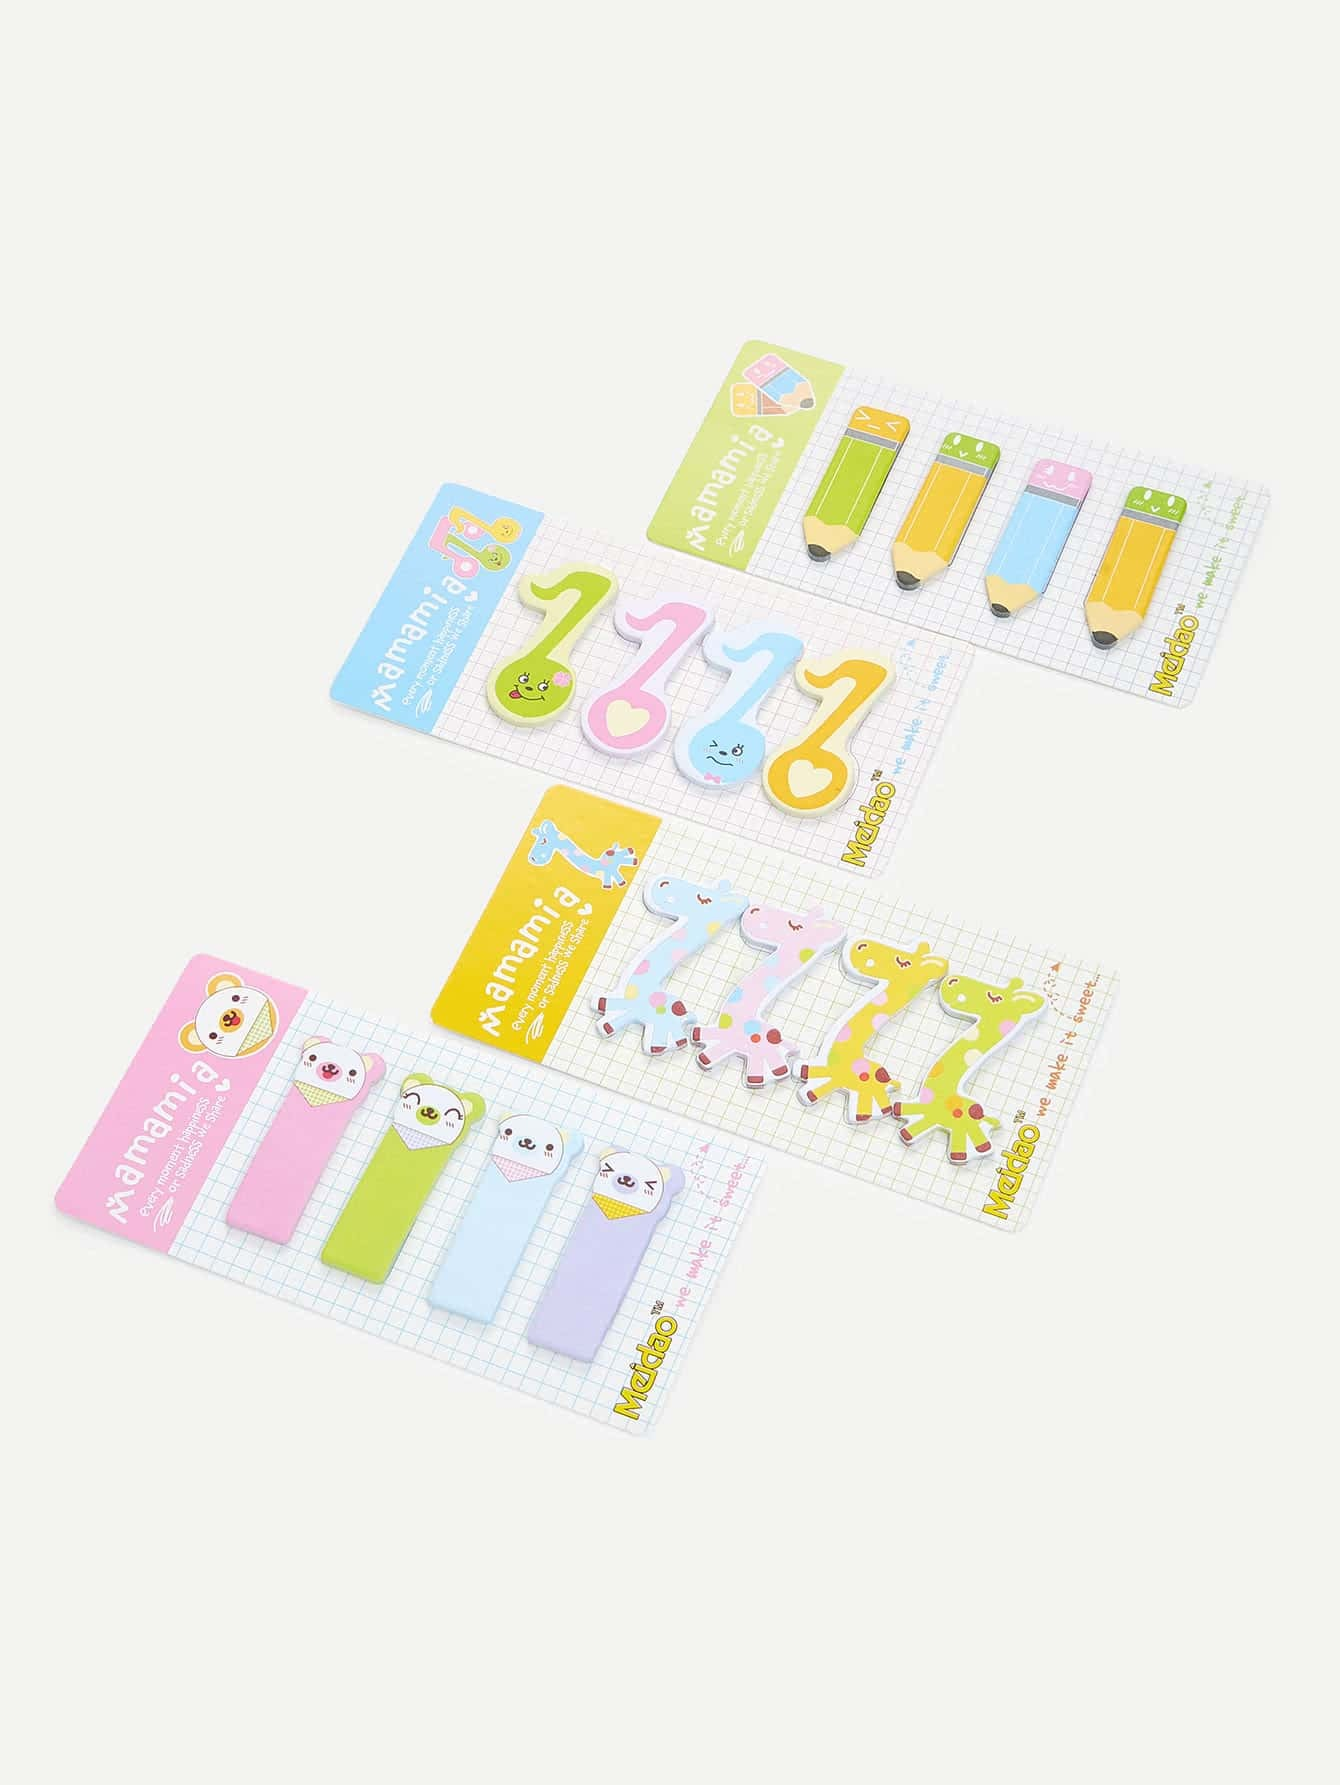 Cartoon Sticky Note Set never rose gold sticky notes and memo pads set cute post note paper notepads set fashion office accessories stationery store